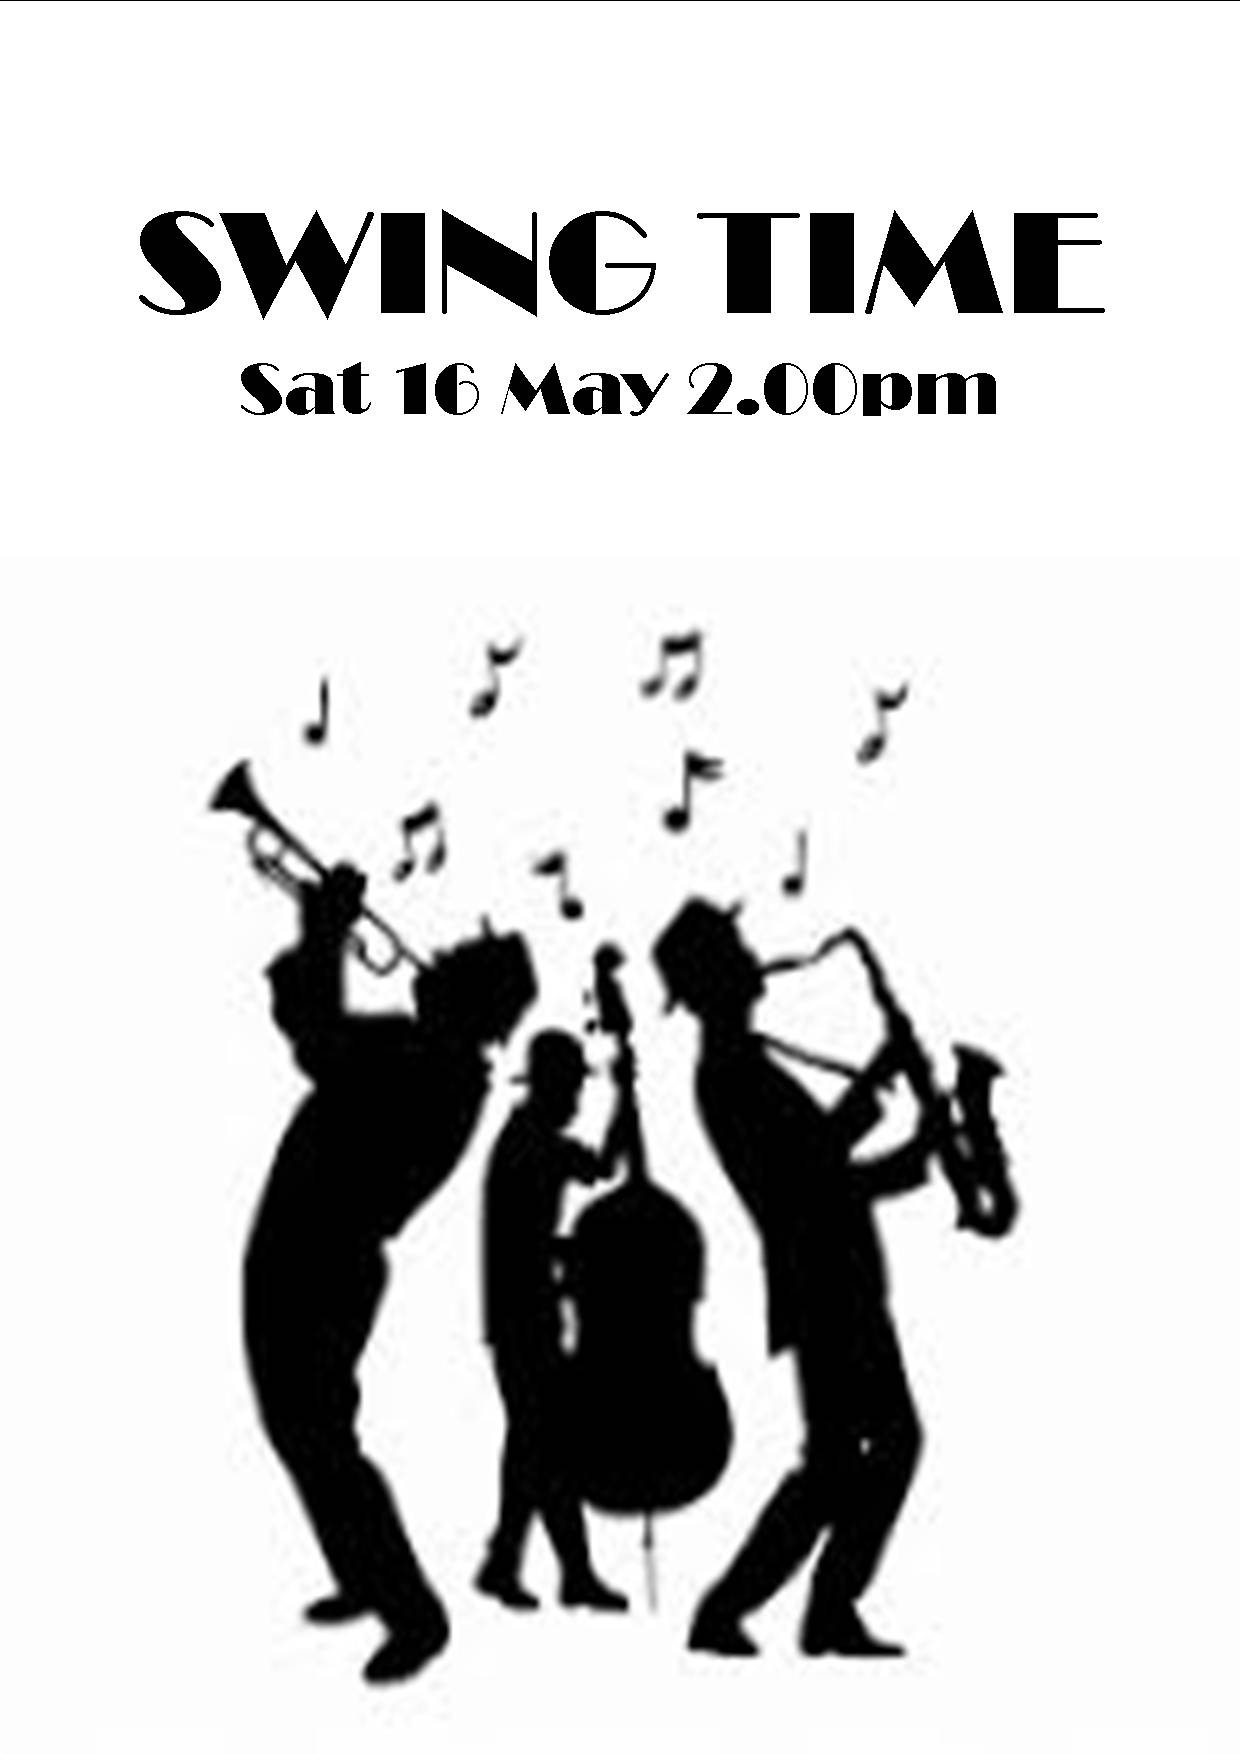 SWING TIME SAT 16 MAY 2.00PM